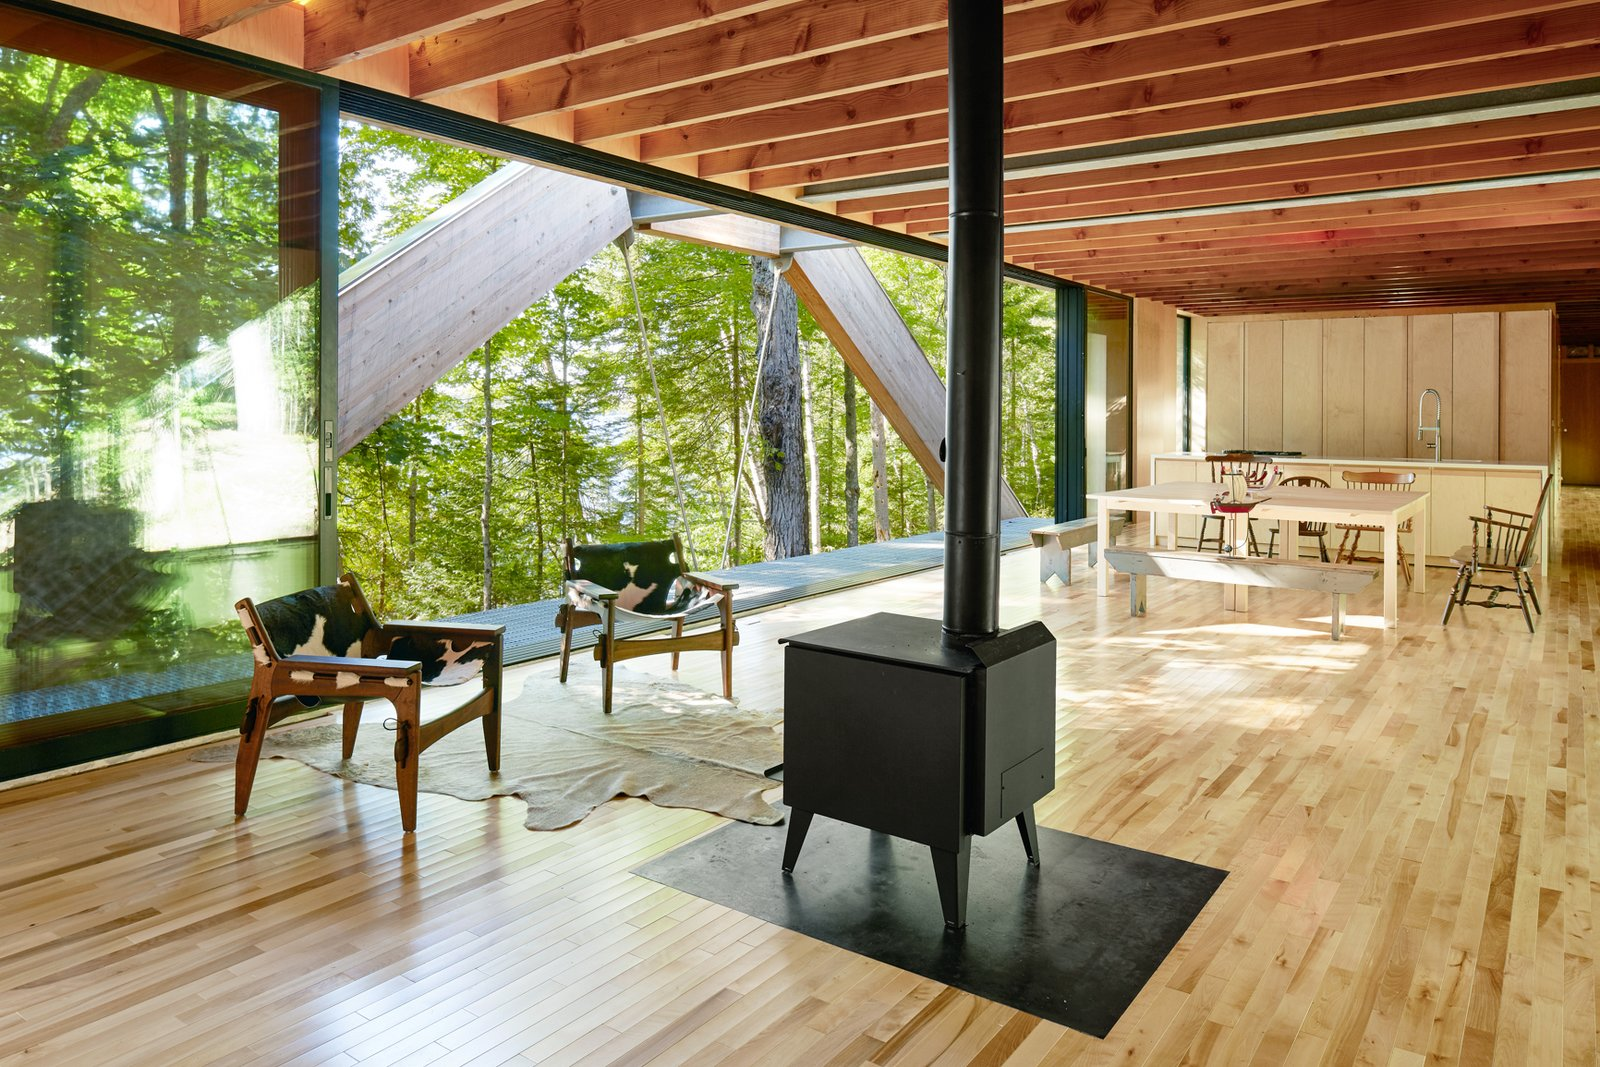 Living Room, Chair, and Standard Layout Fireplace  Photo 5 of 12 in A Unique Home in the Canadian Forest That Doubles As a Bridge